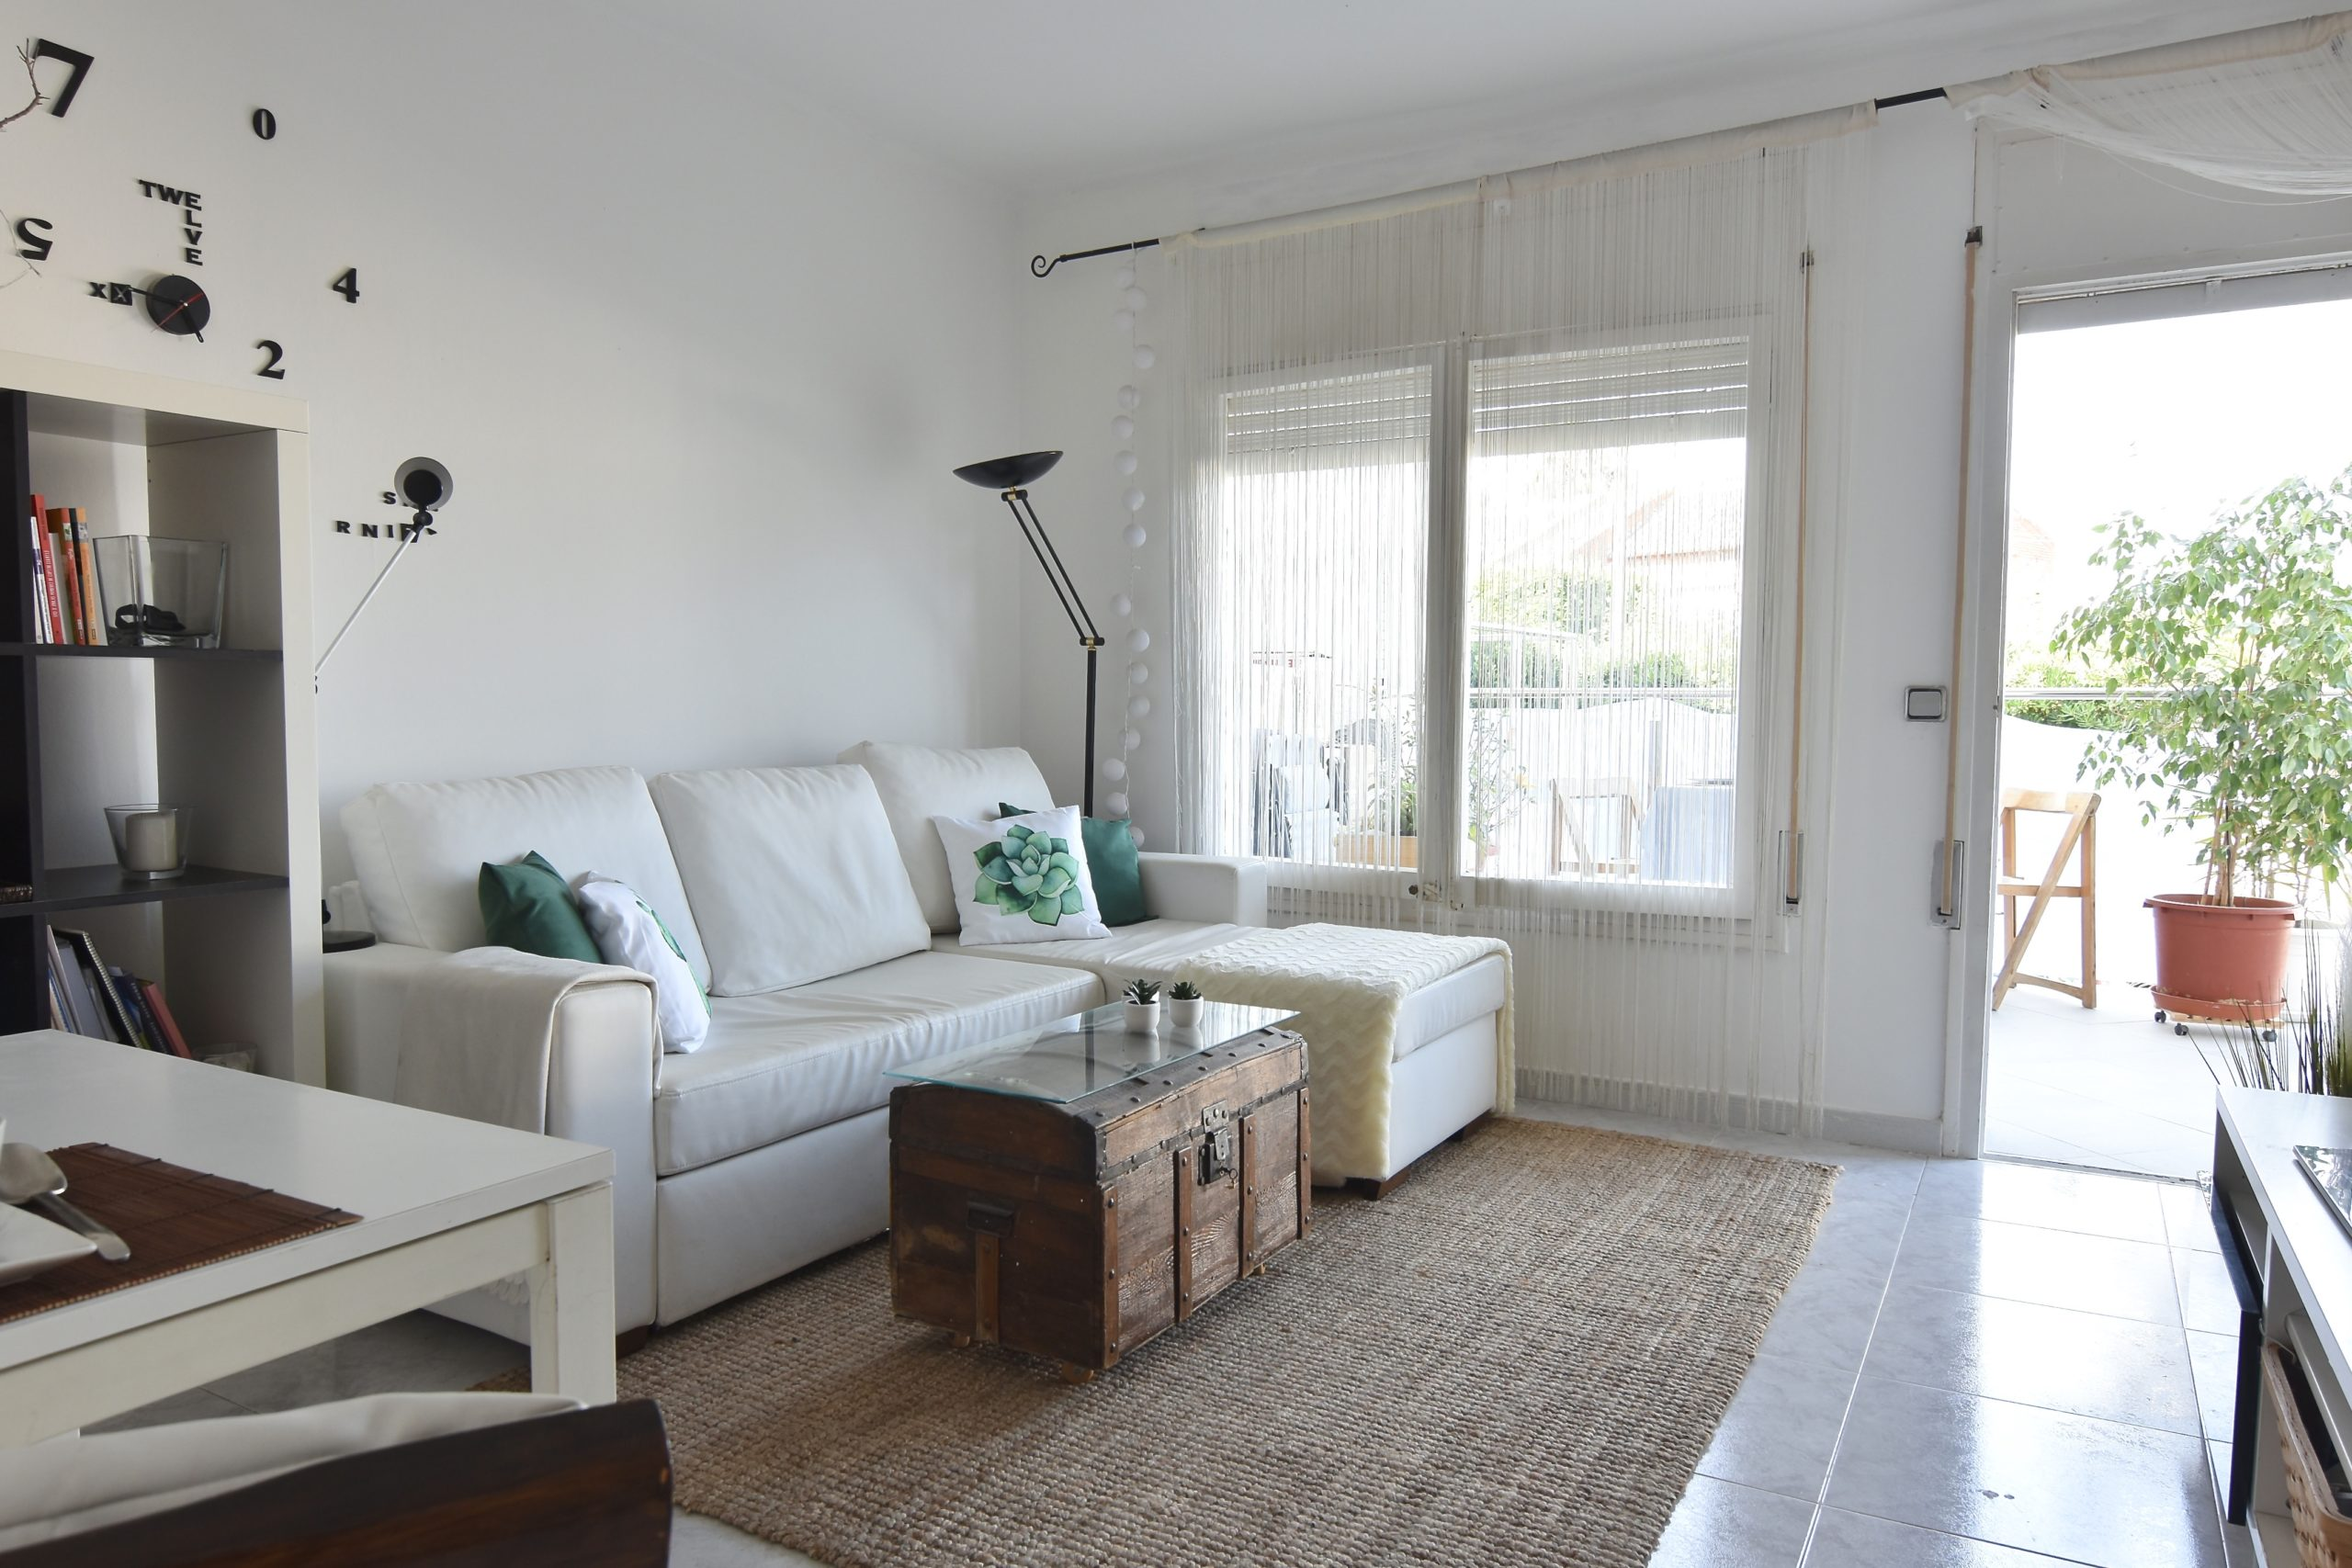 Delaguard_Home_Staging_Vender_rapido_castelldefels_chile